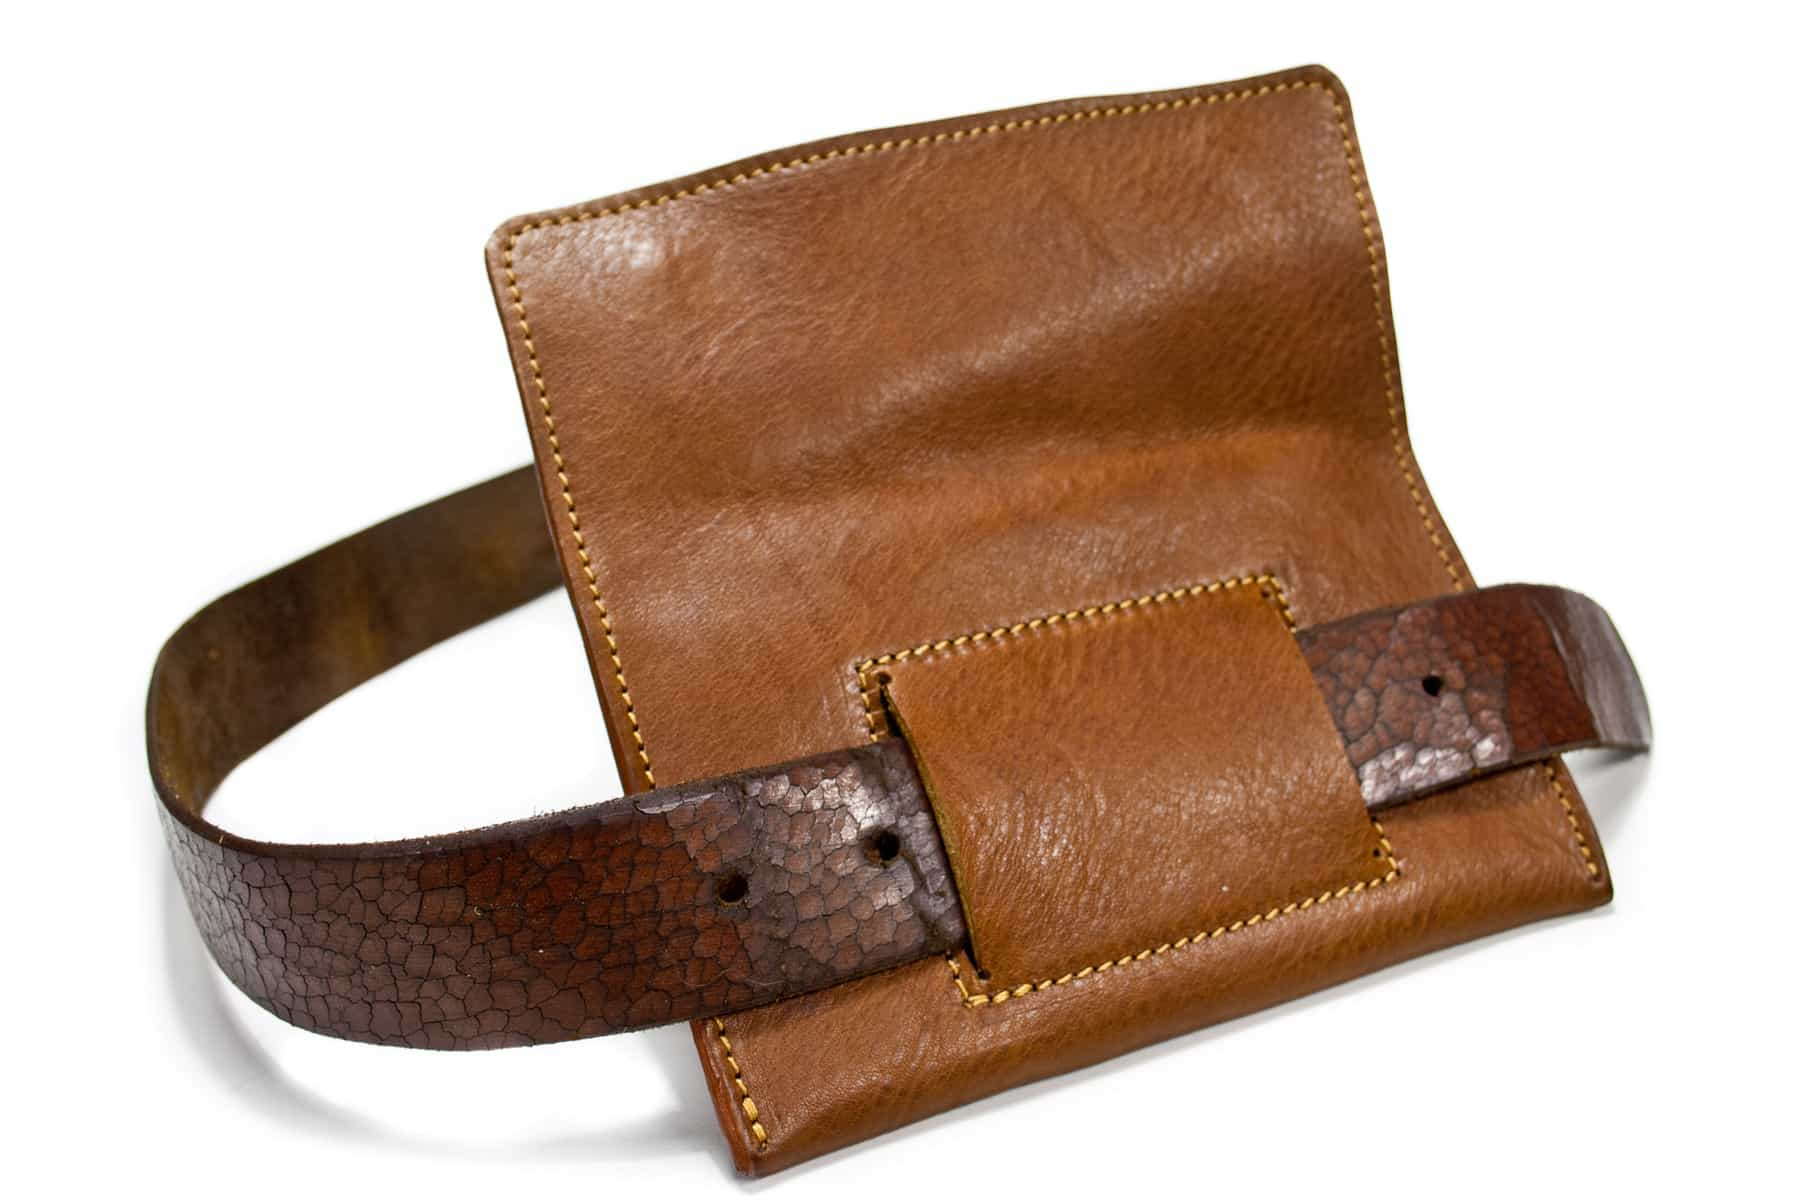 iPhone 7, 6 Plus Leather Wallet Belt, by Nicola Meyer